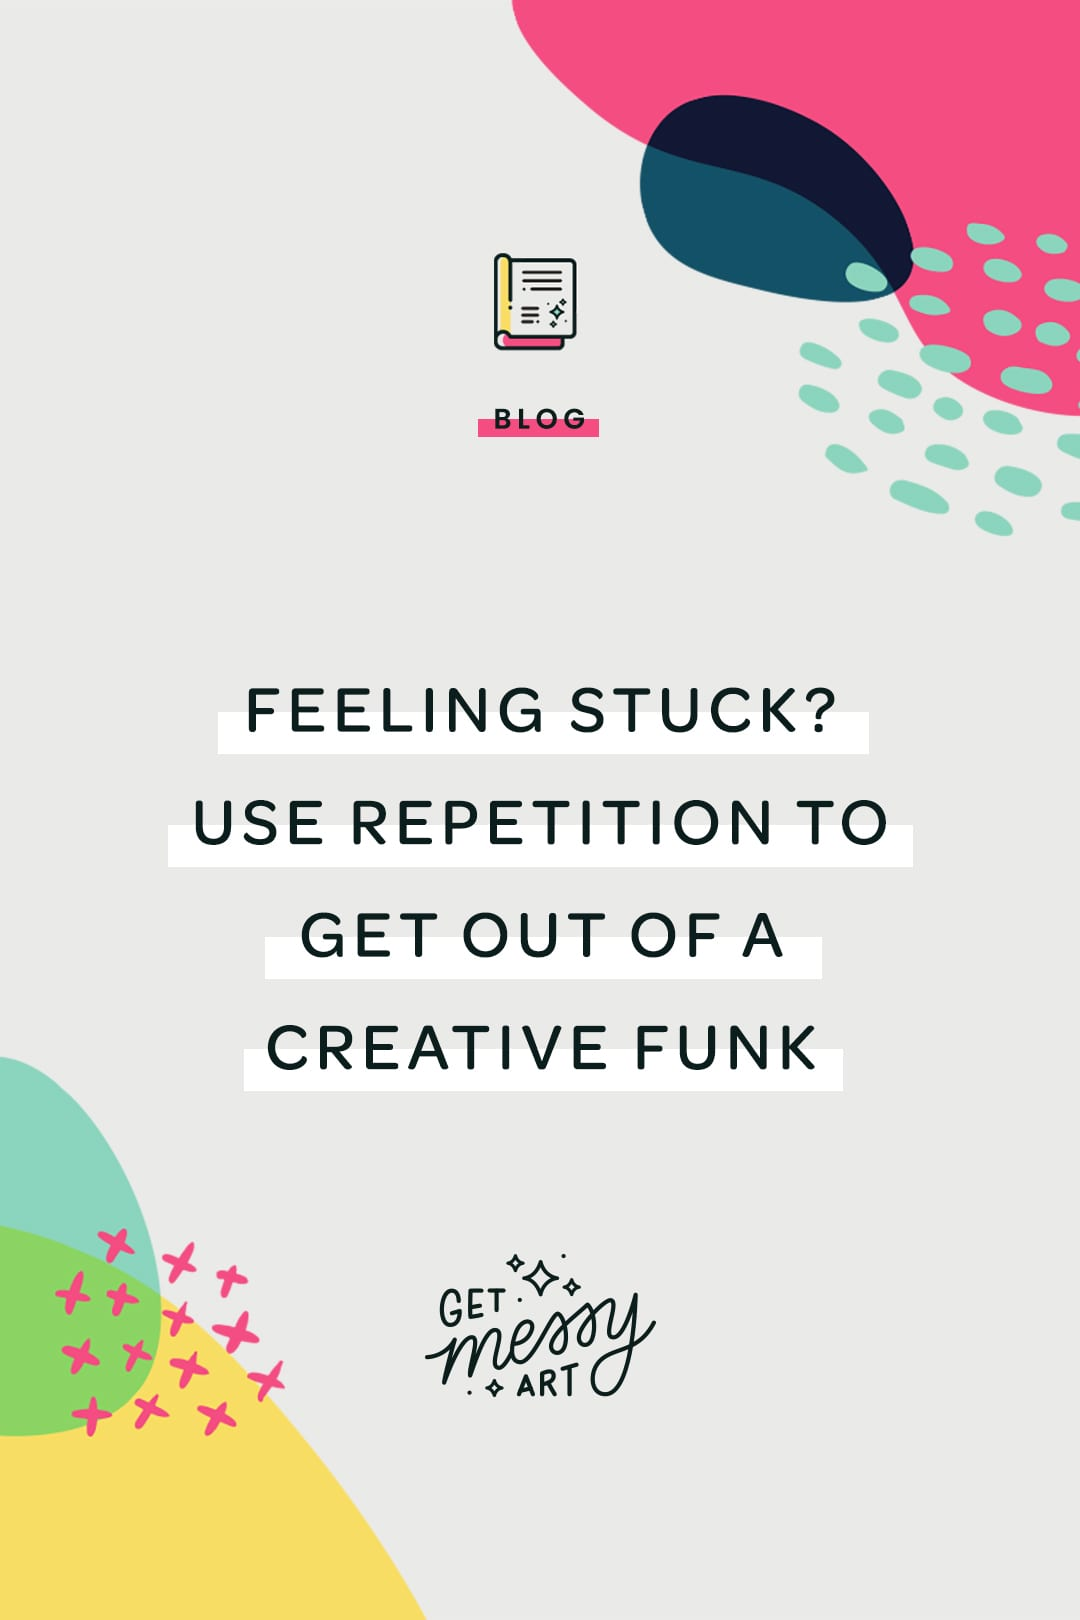 Feeling stuck? Use repetition to get out of a creative funk